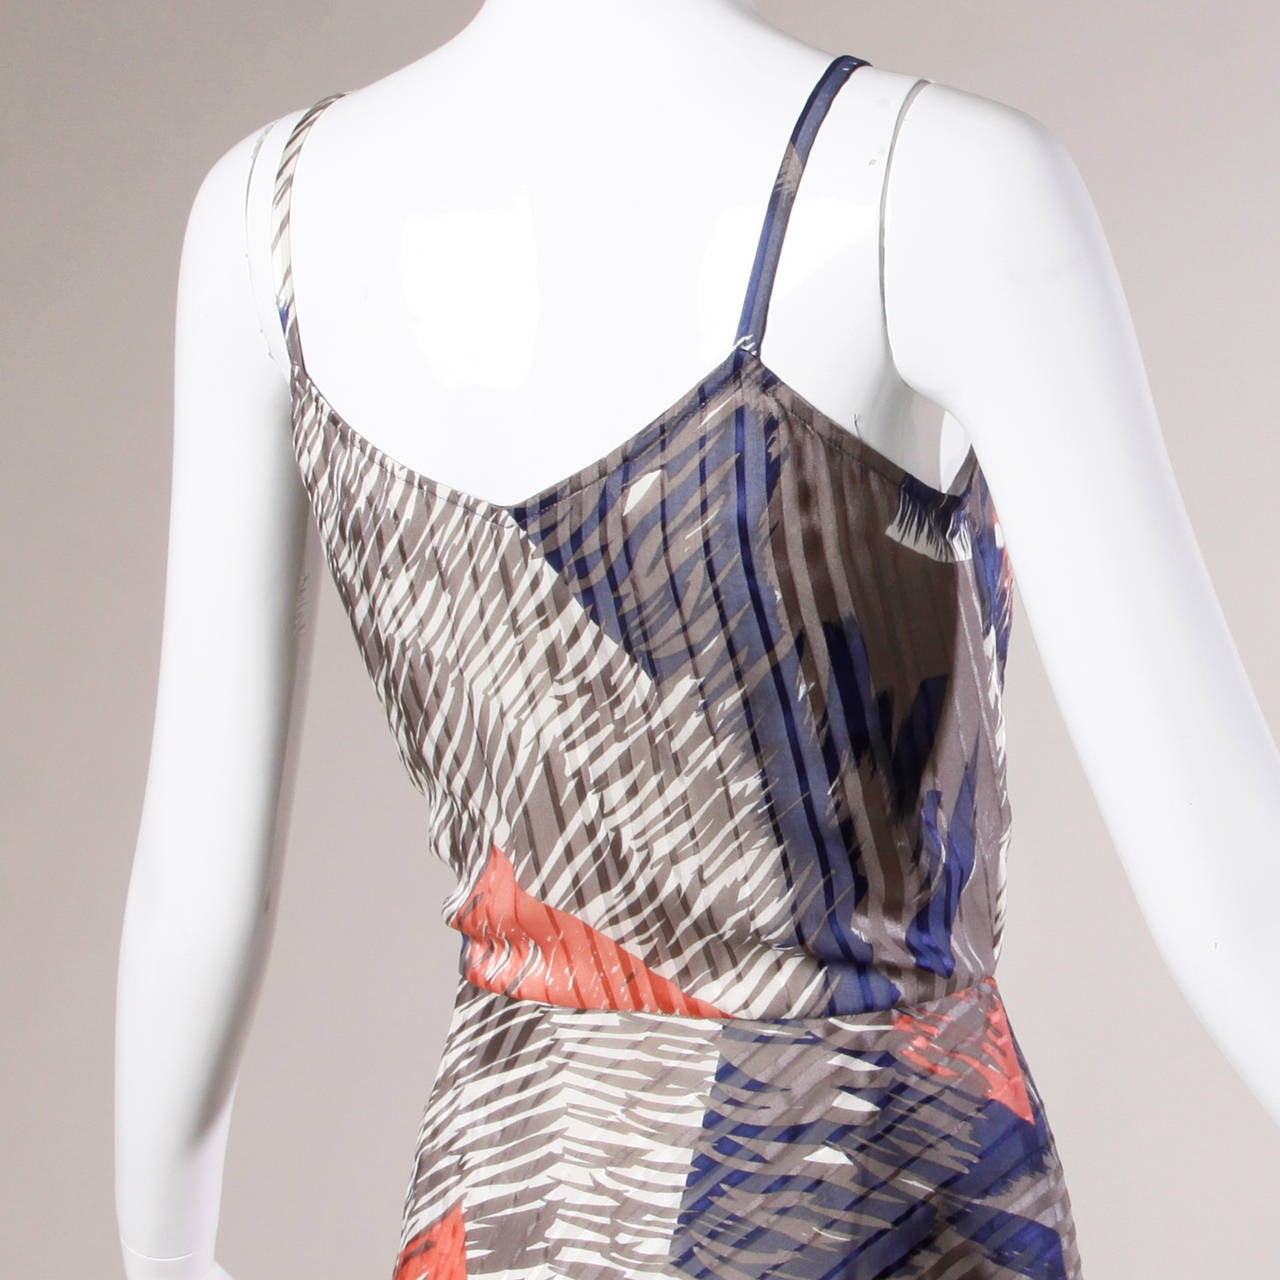 Vintage Sheer Printed Silk Chiffon Dress In Excellent Condition For Sale In Sparks, NV